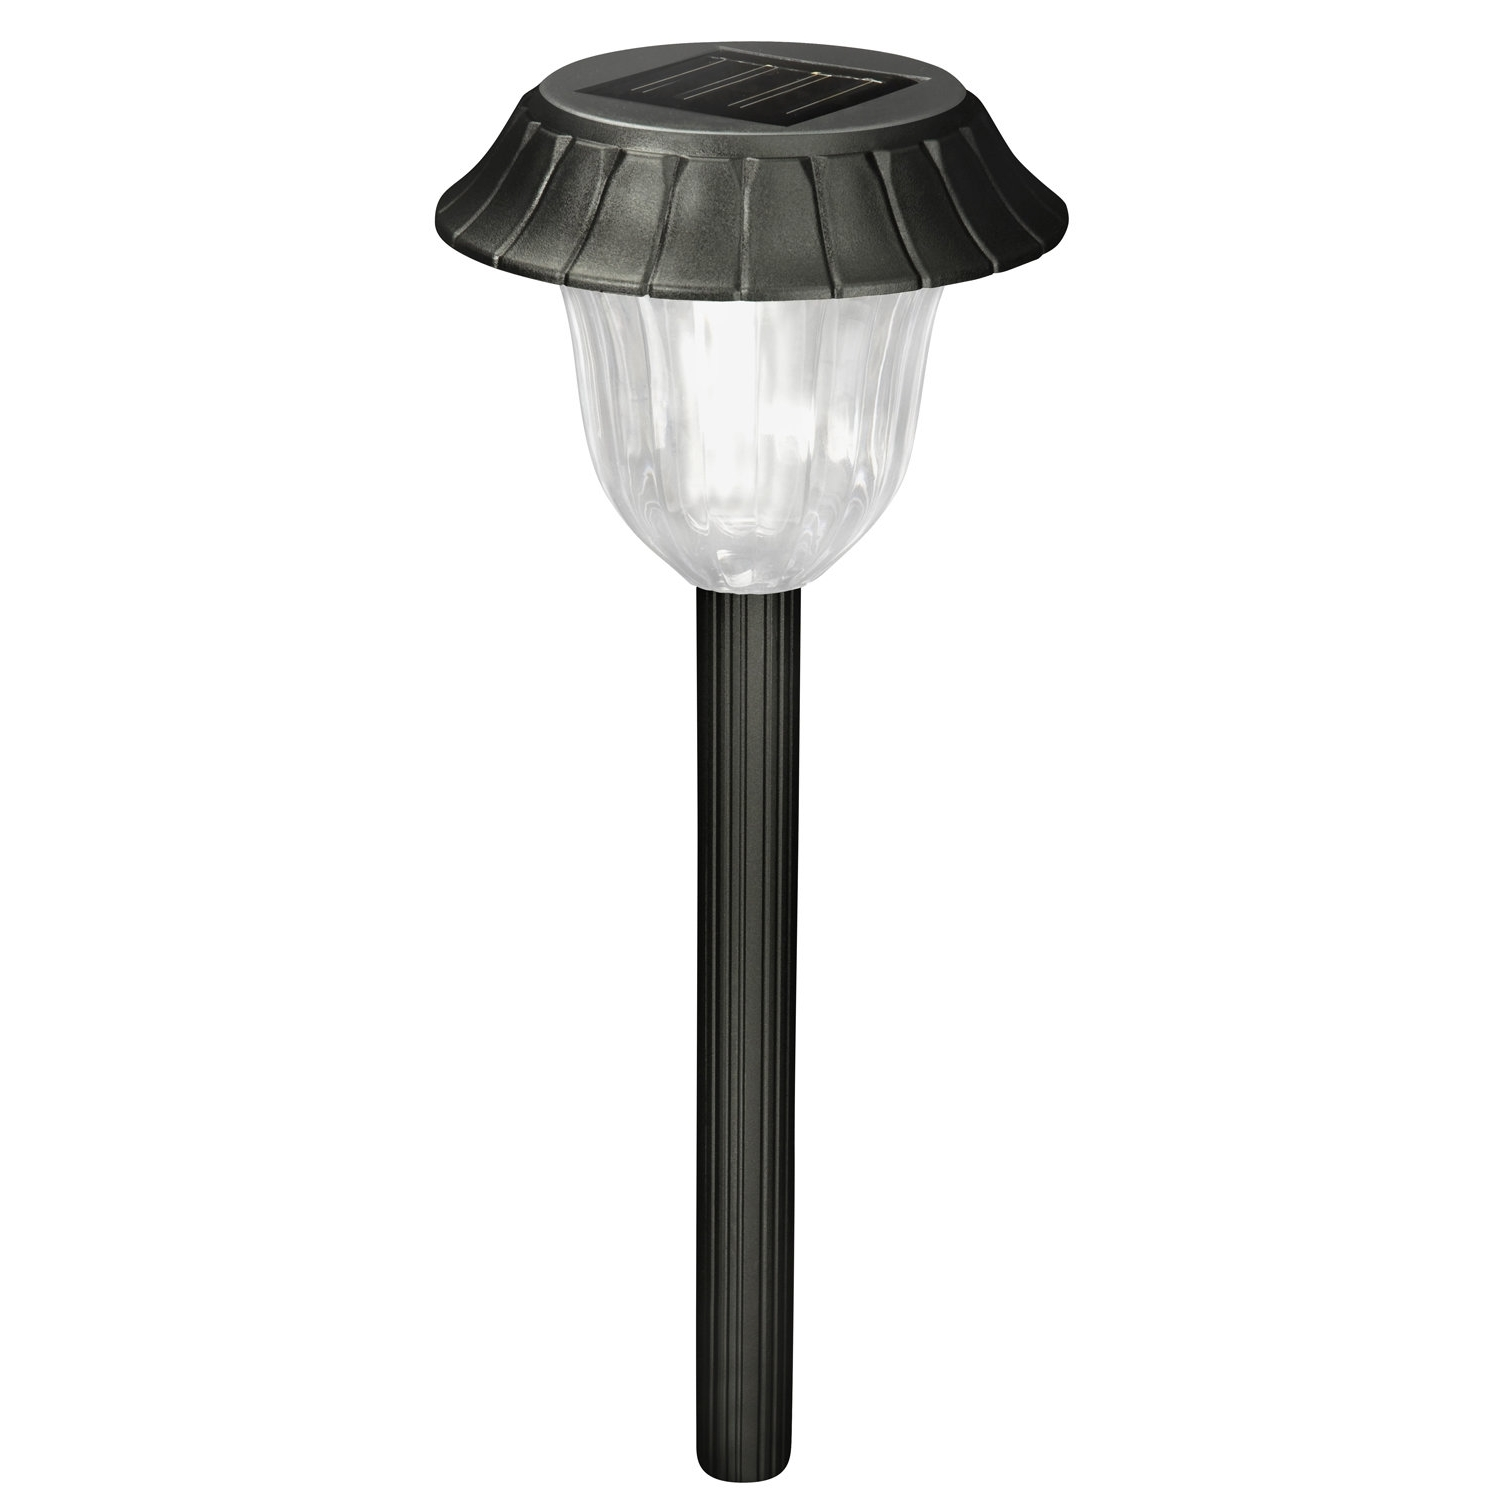 Wayfair For Most Recent Wayfair Landscape Lighting For Mini Garden (View 13 of 20)